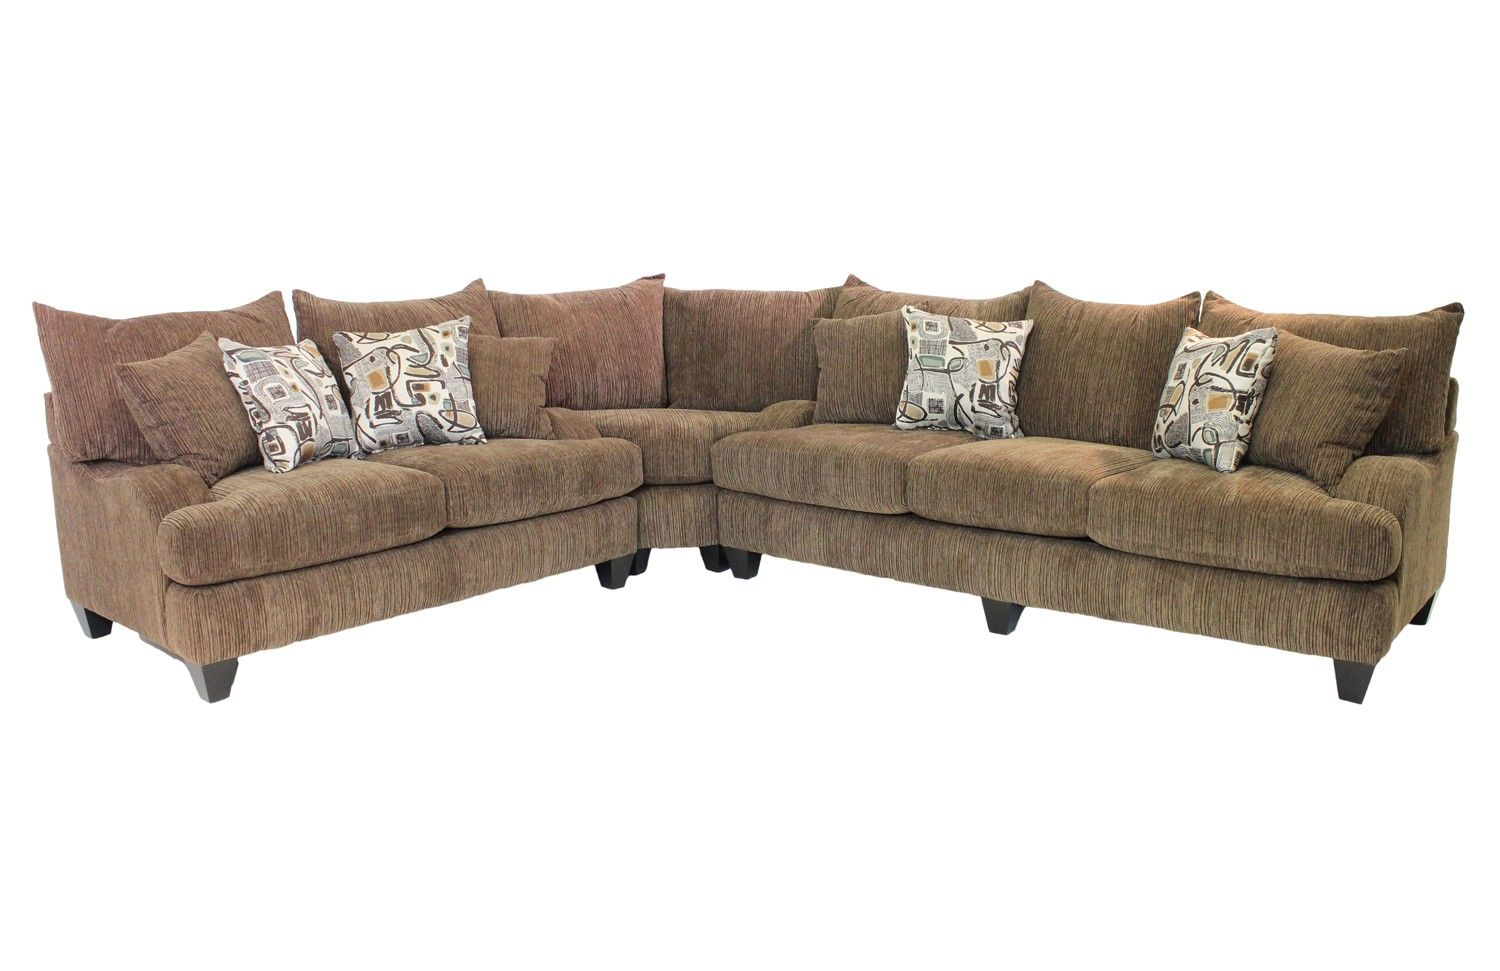 Tabby Brown Sectional Sectionals Living Room Mor Furniture For Less Furniture